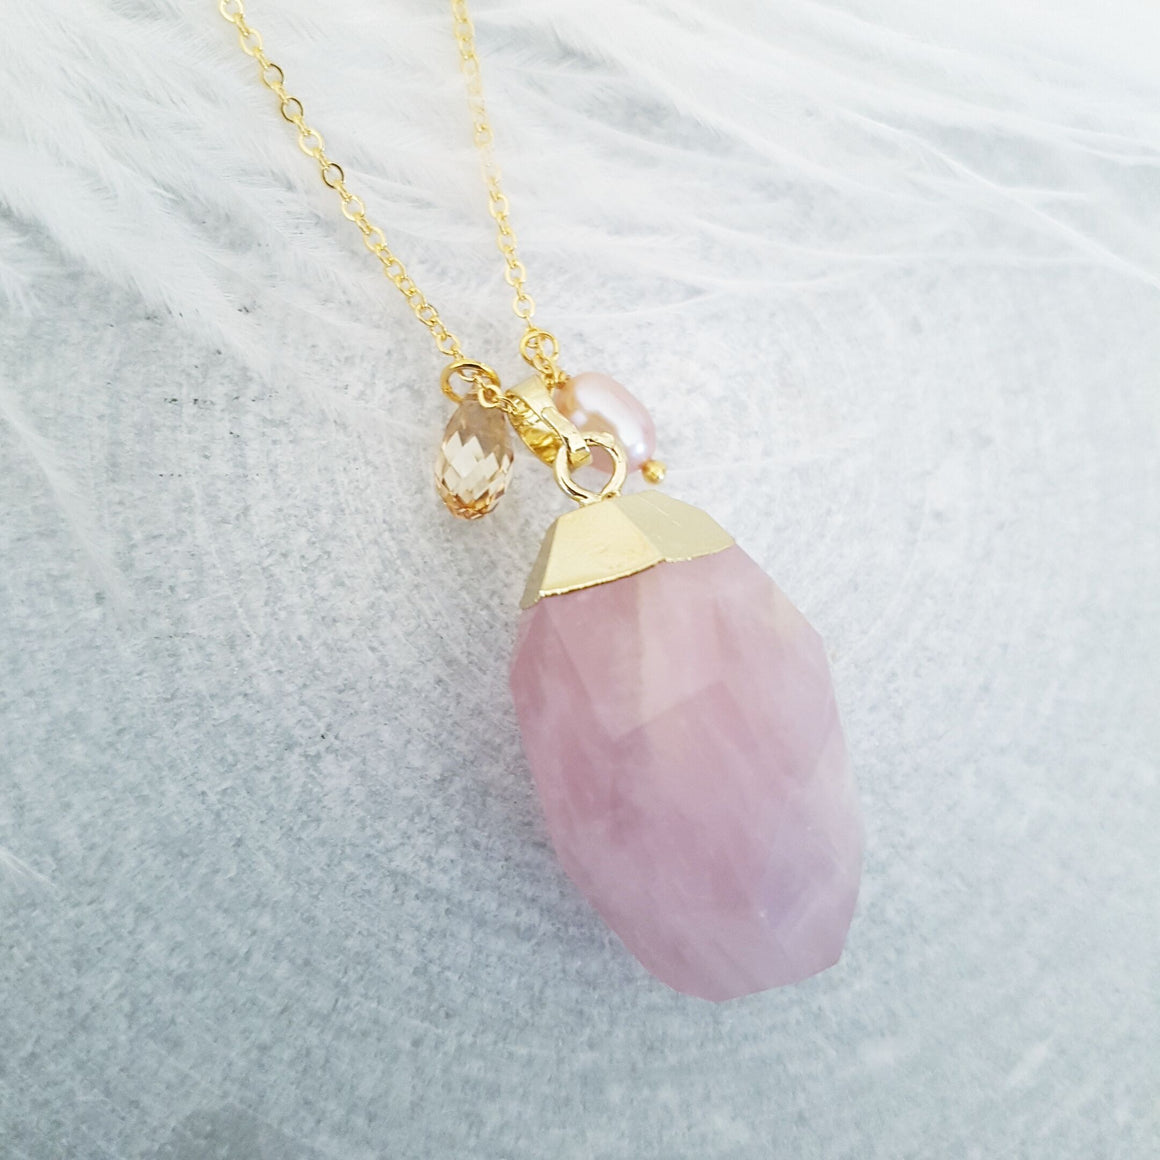 Rose Quartz Nugget Necklace